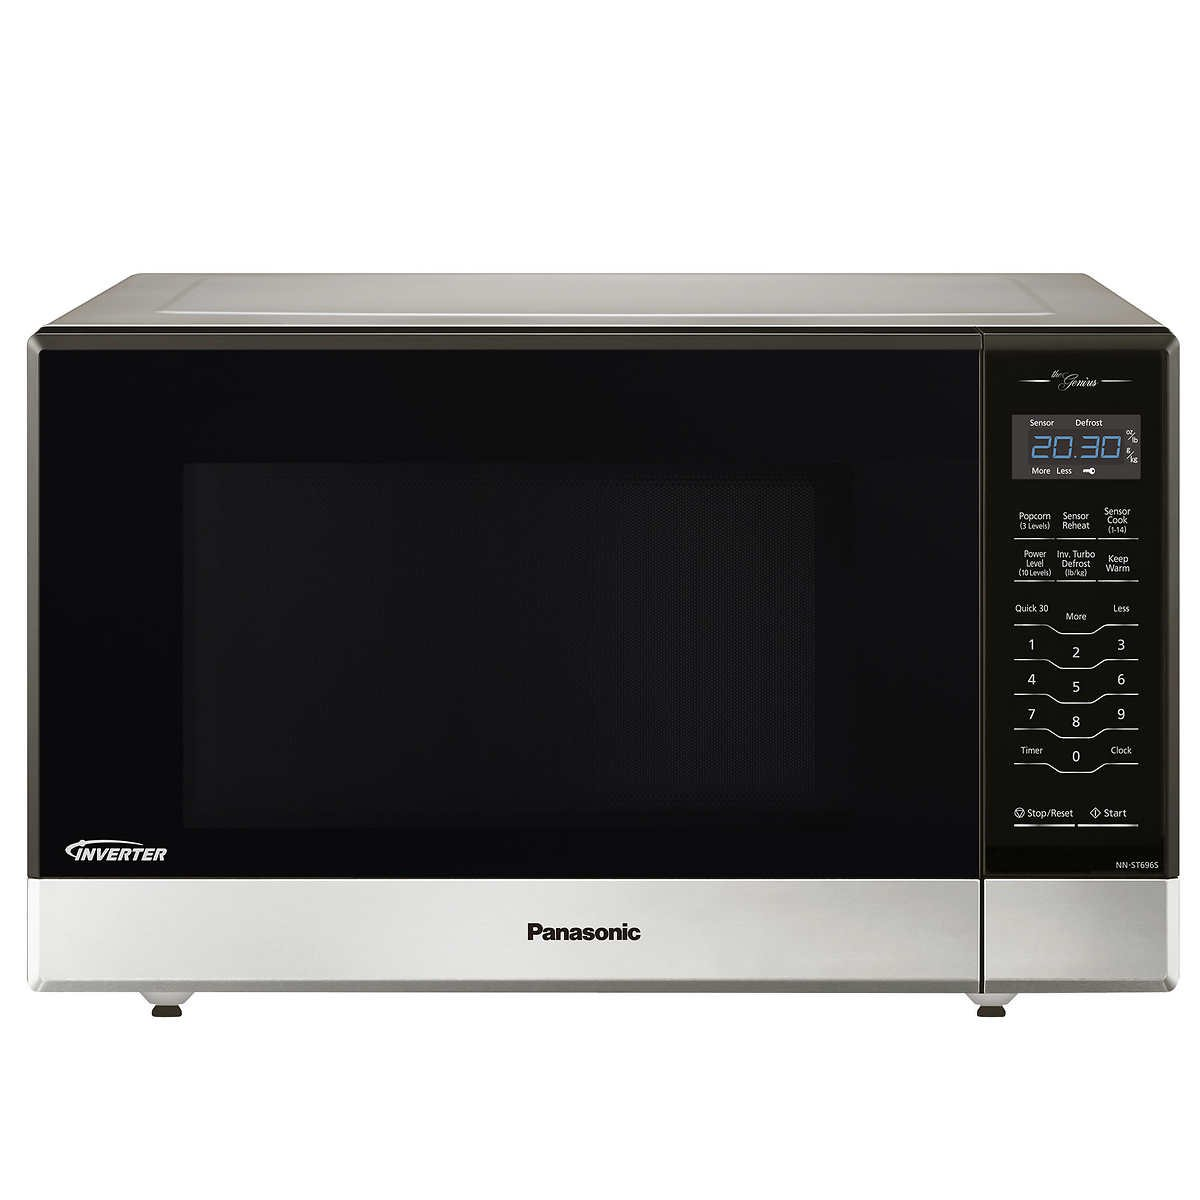 Panasonic NN-ST696S Countertop/Built-In Microwave with Inverter Technology, 1.2 cu. ft. , Stainless (Certified Refurbished)